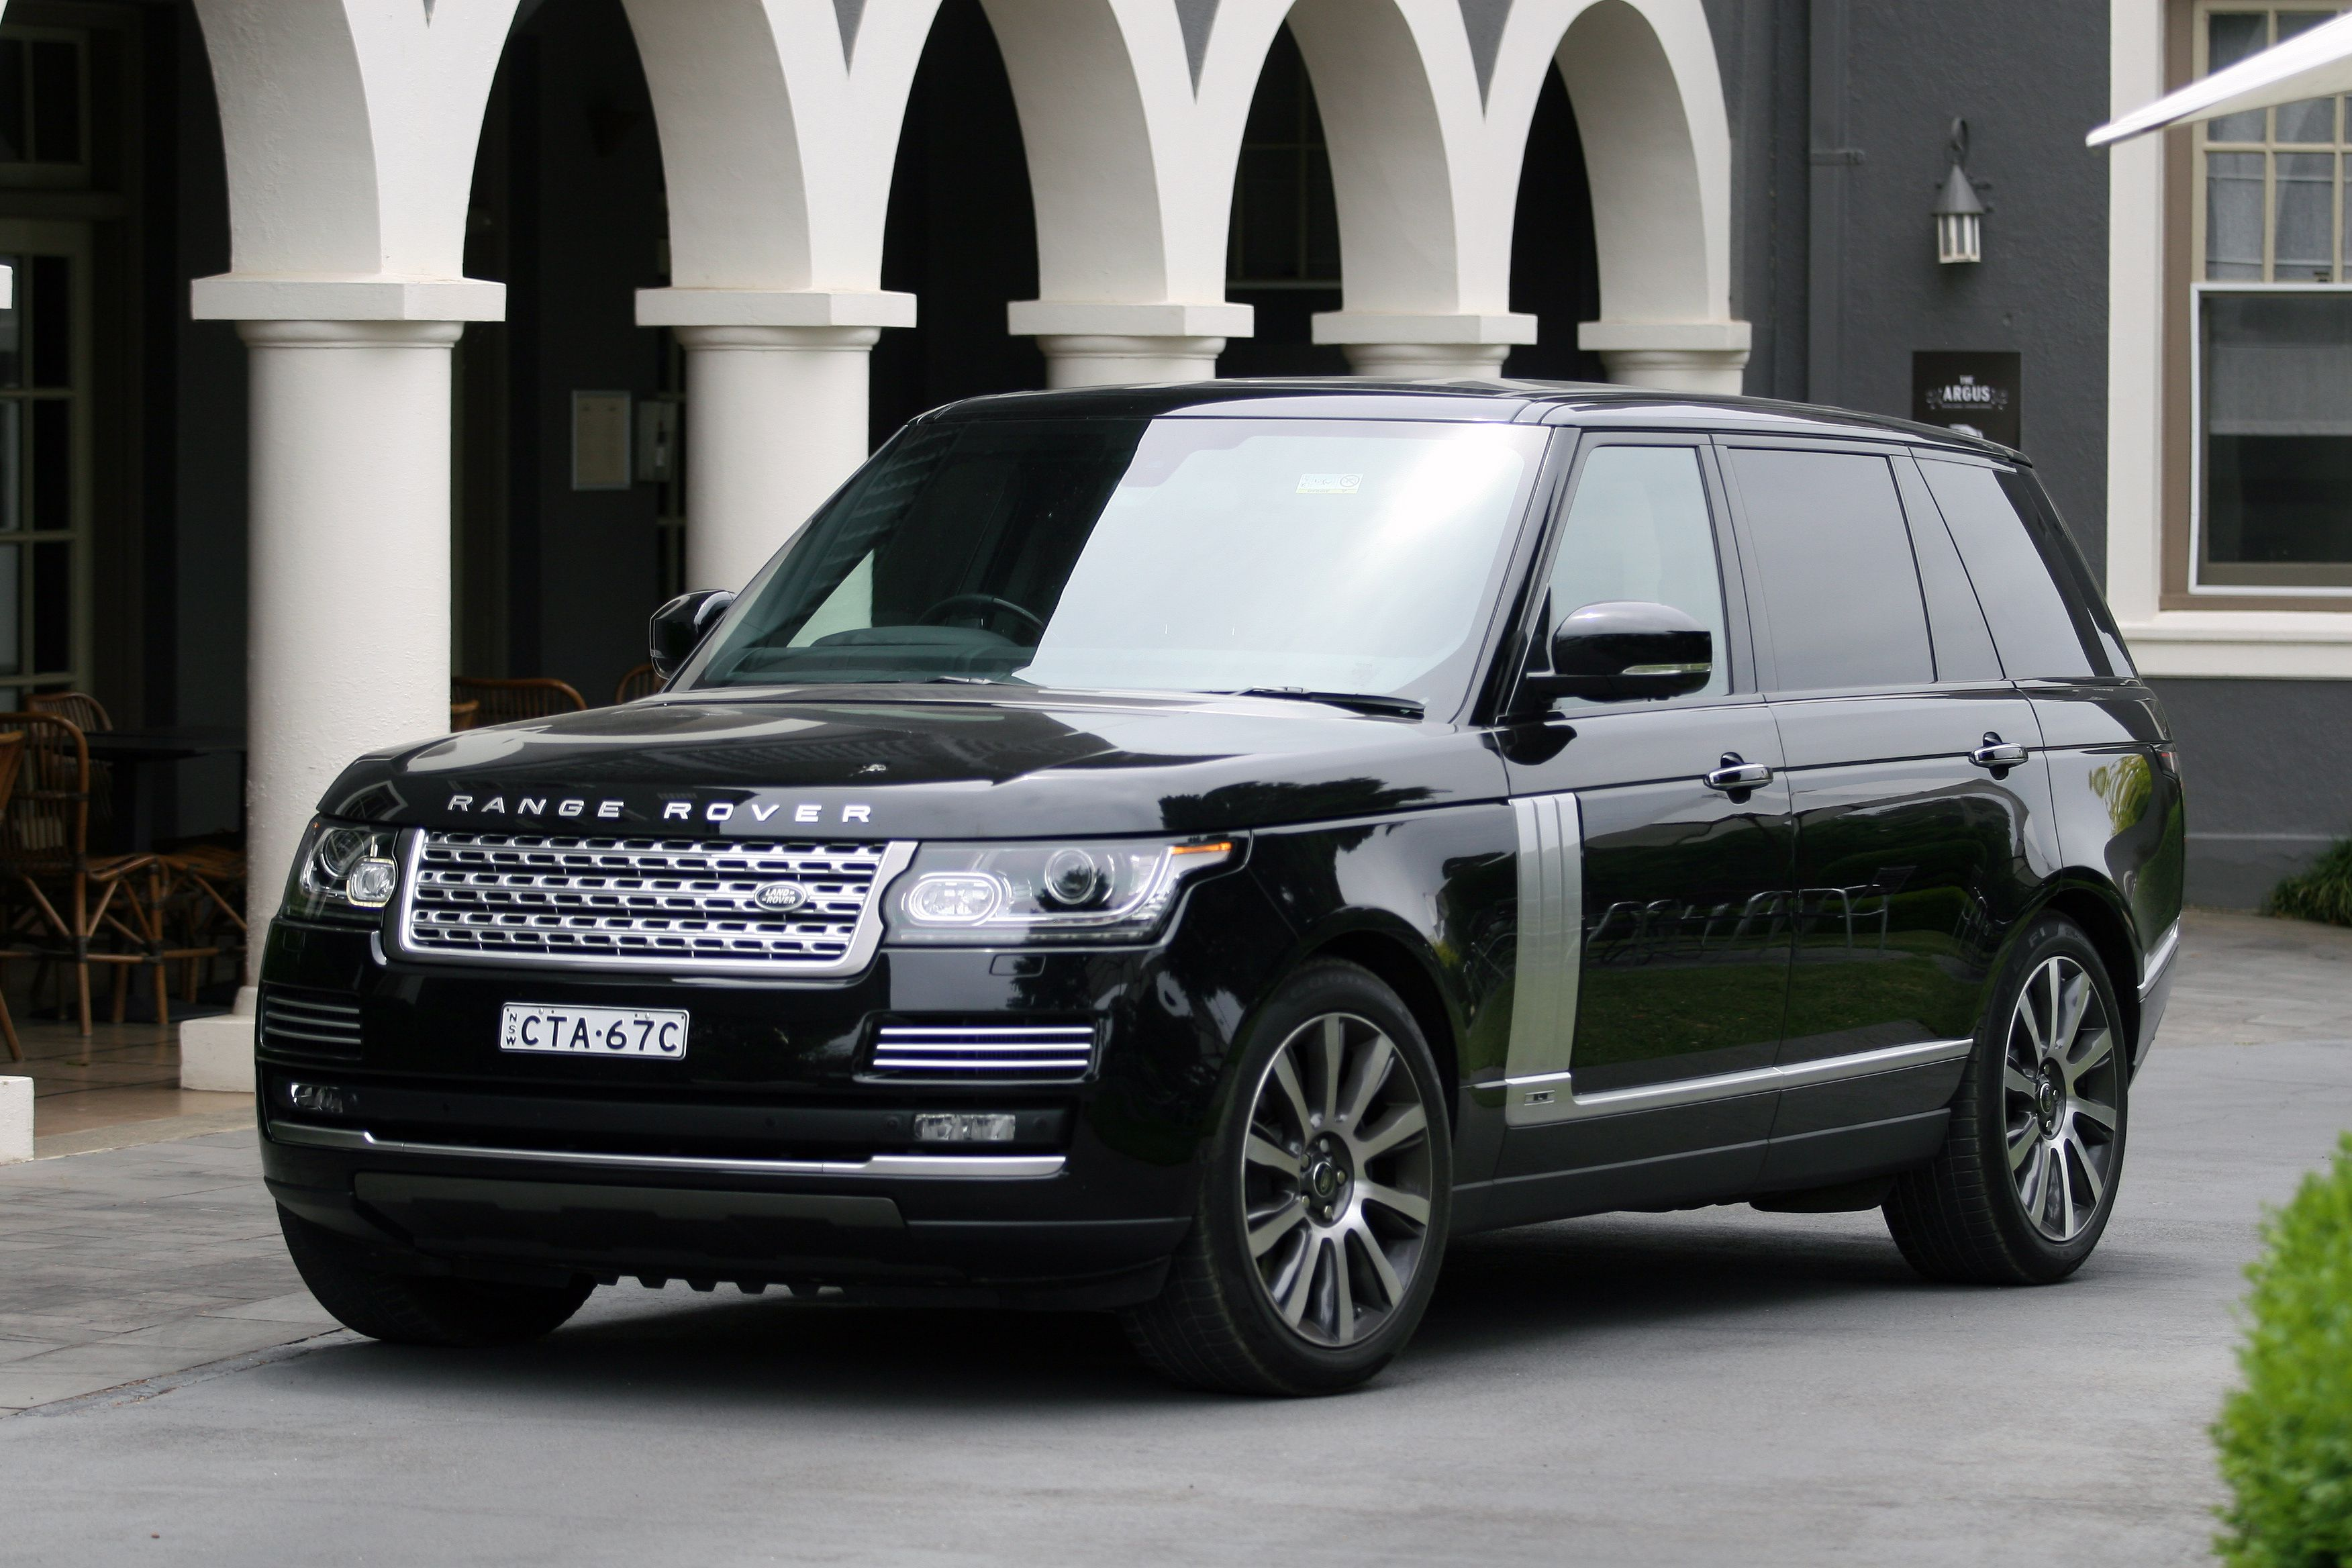 2015 range rover autobiography lwb review luxury travel. Black Bedroom Furniture Sets. Home Design Ideas